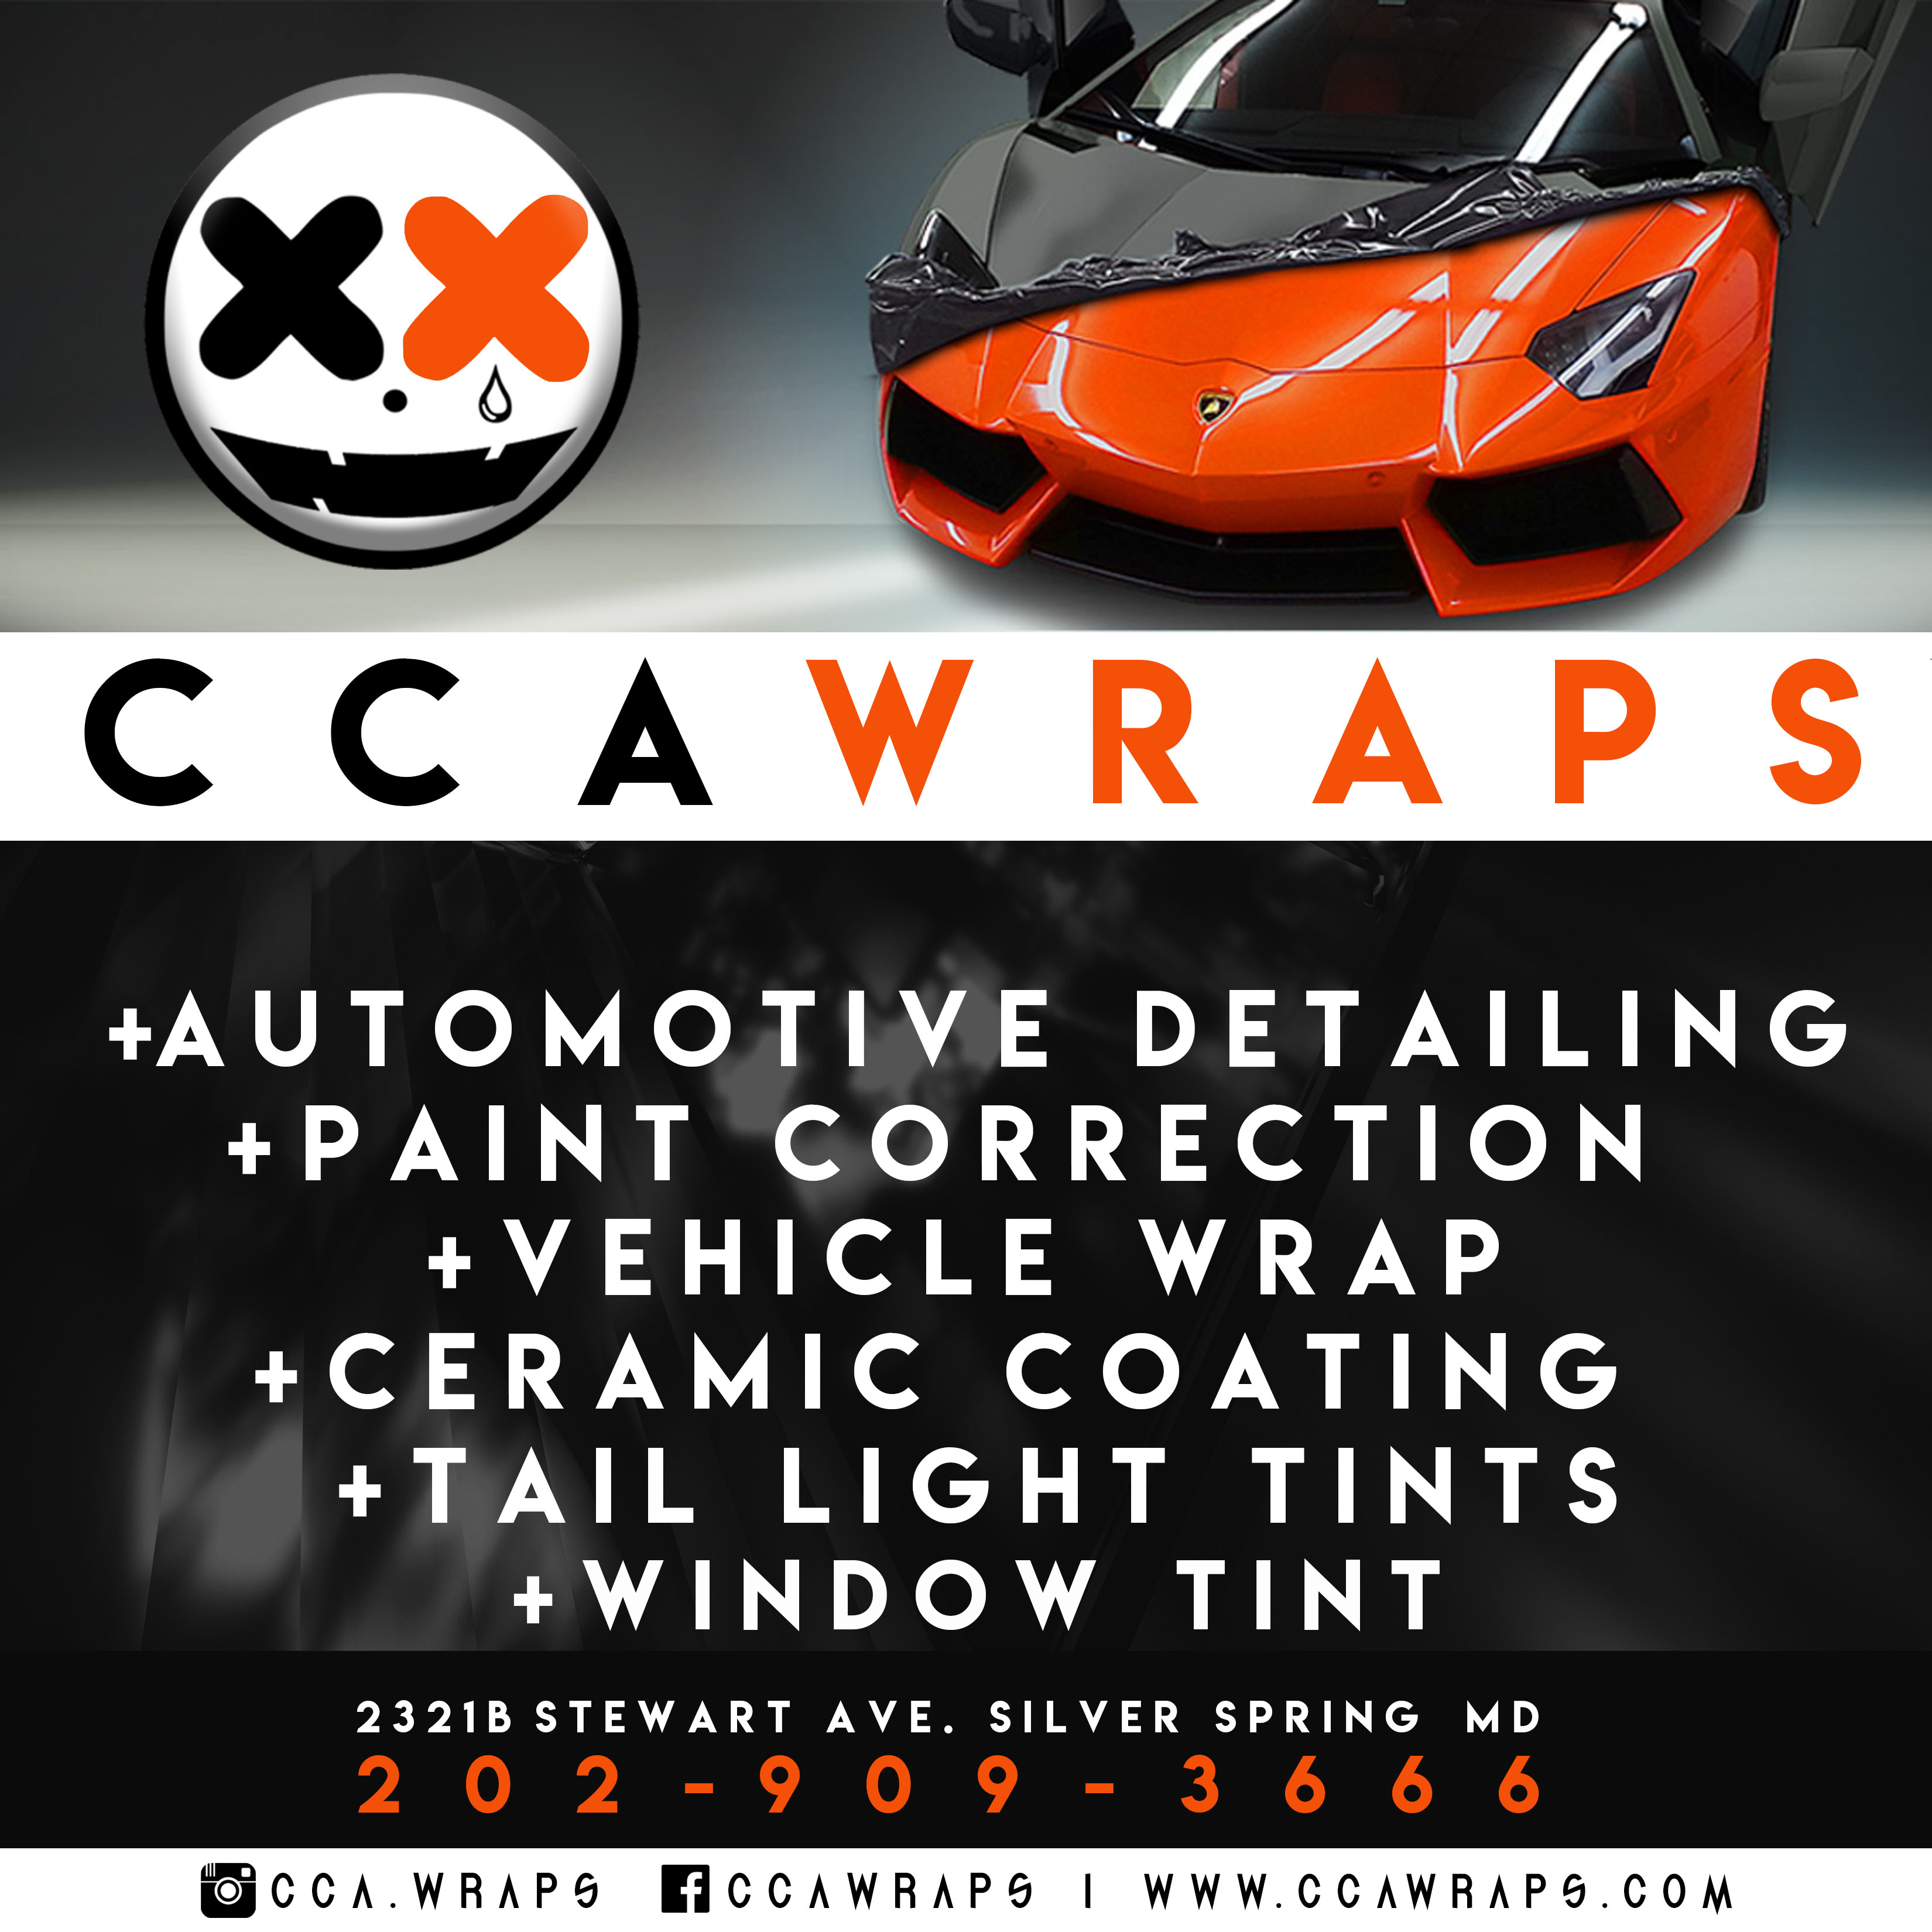 cca wrapS mAY 2018